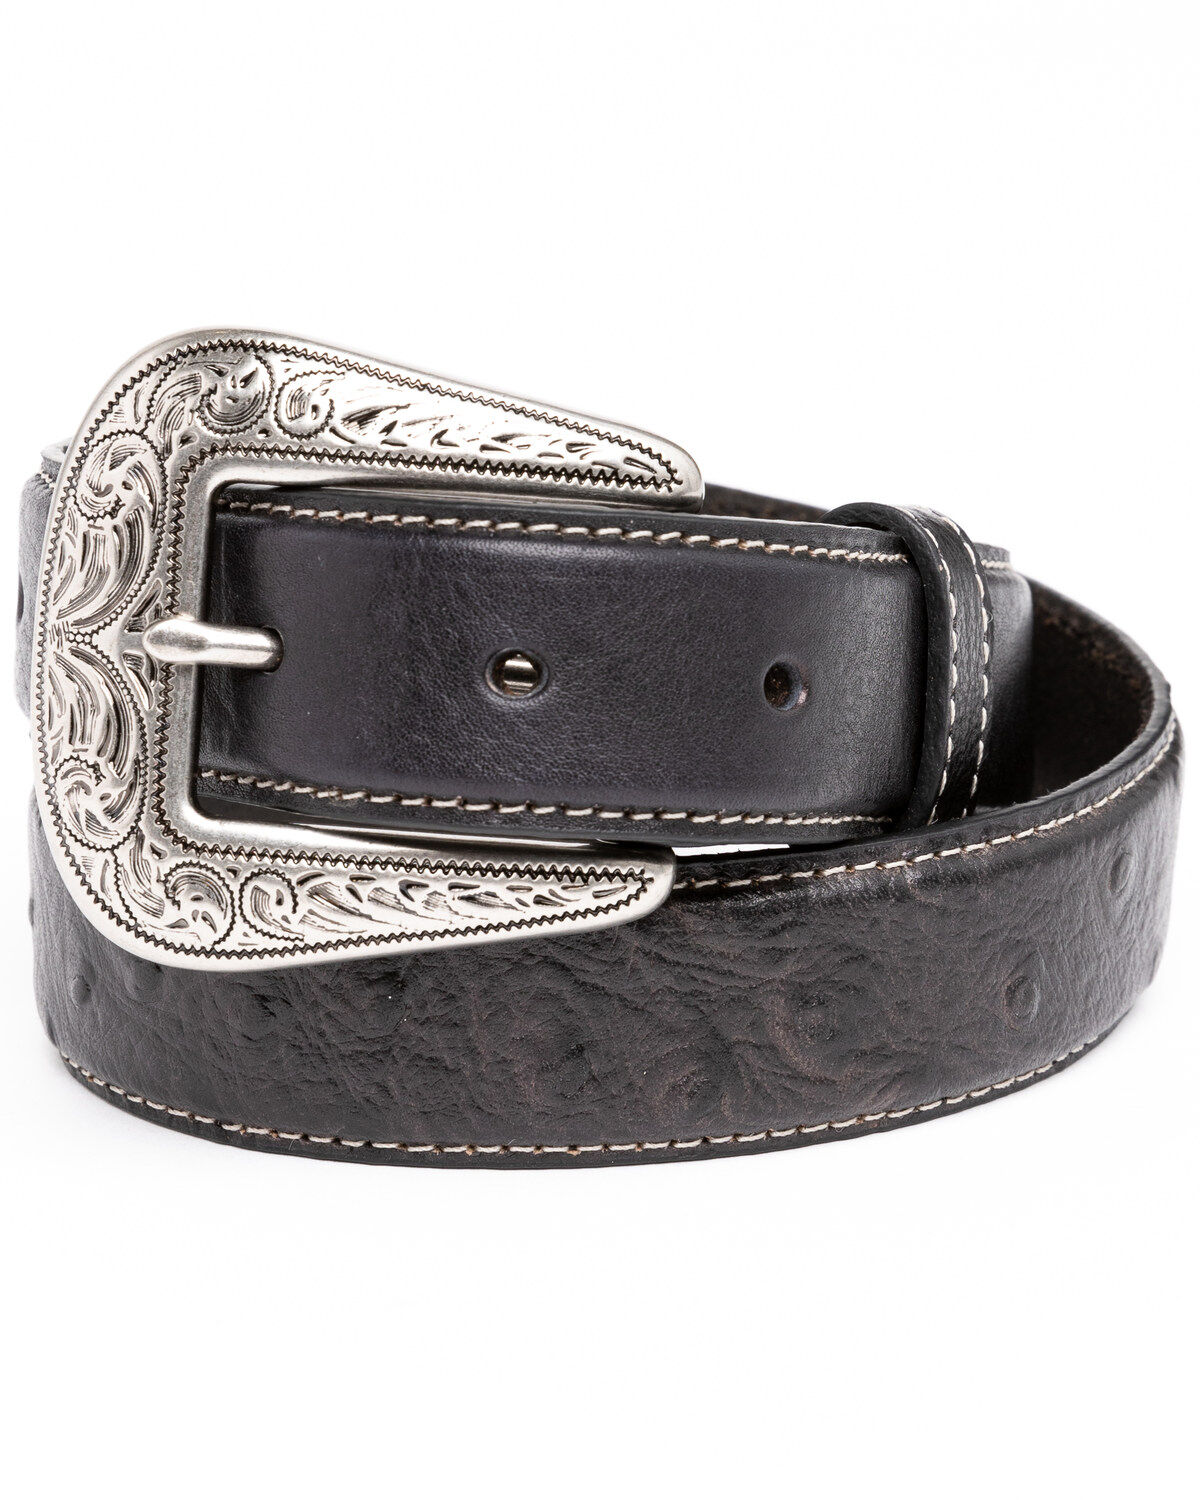 KIDS  GENUINE LEATHER BELT with NAME HORSE HEAD  /&  HORSE SHOE